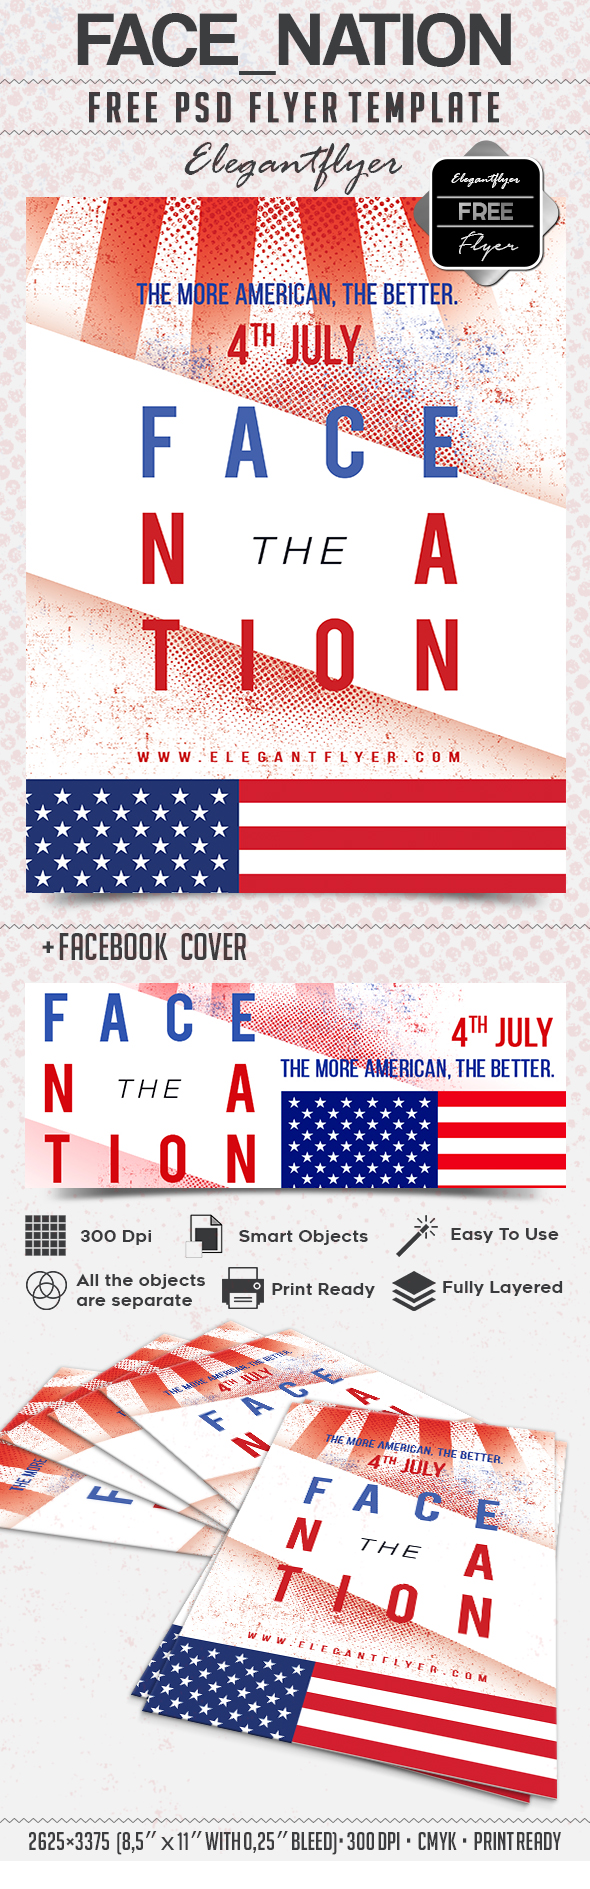 Face nation – Free Flyer PSD Template